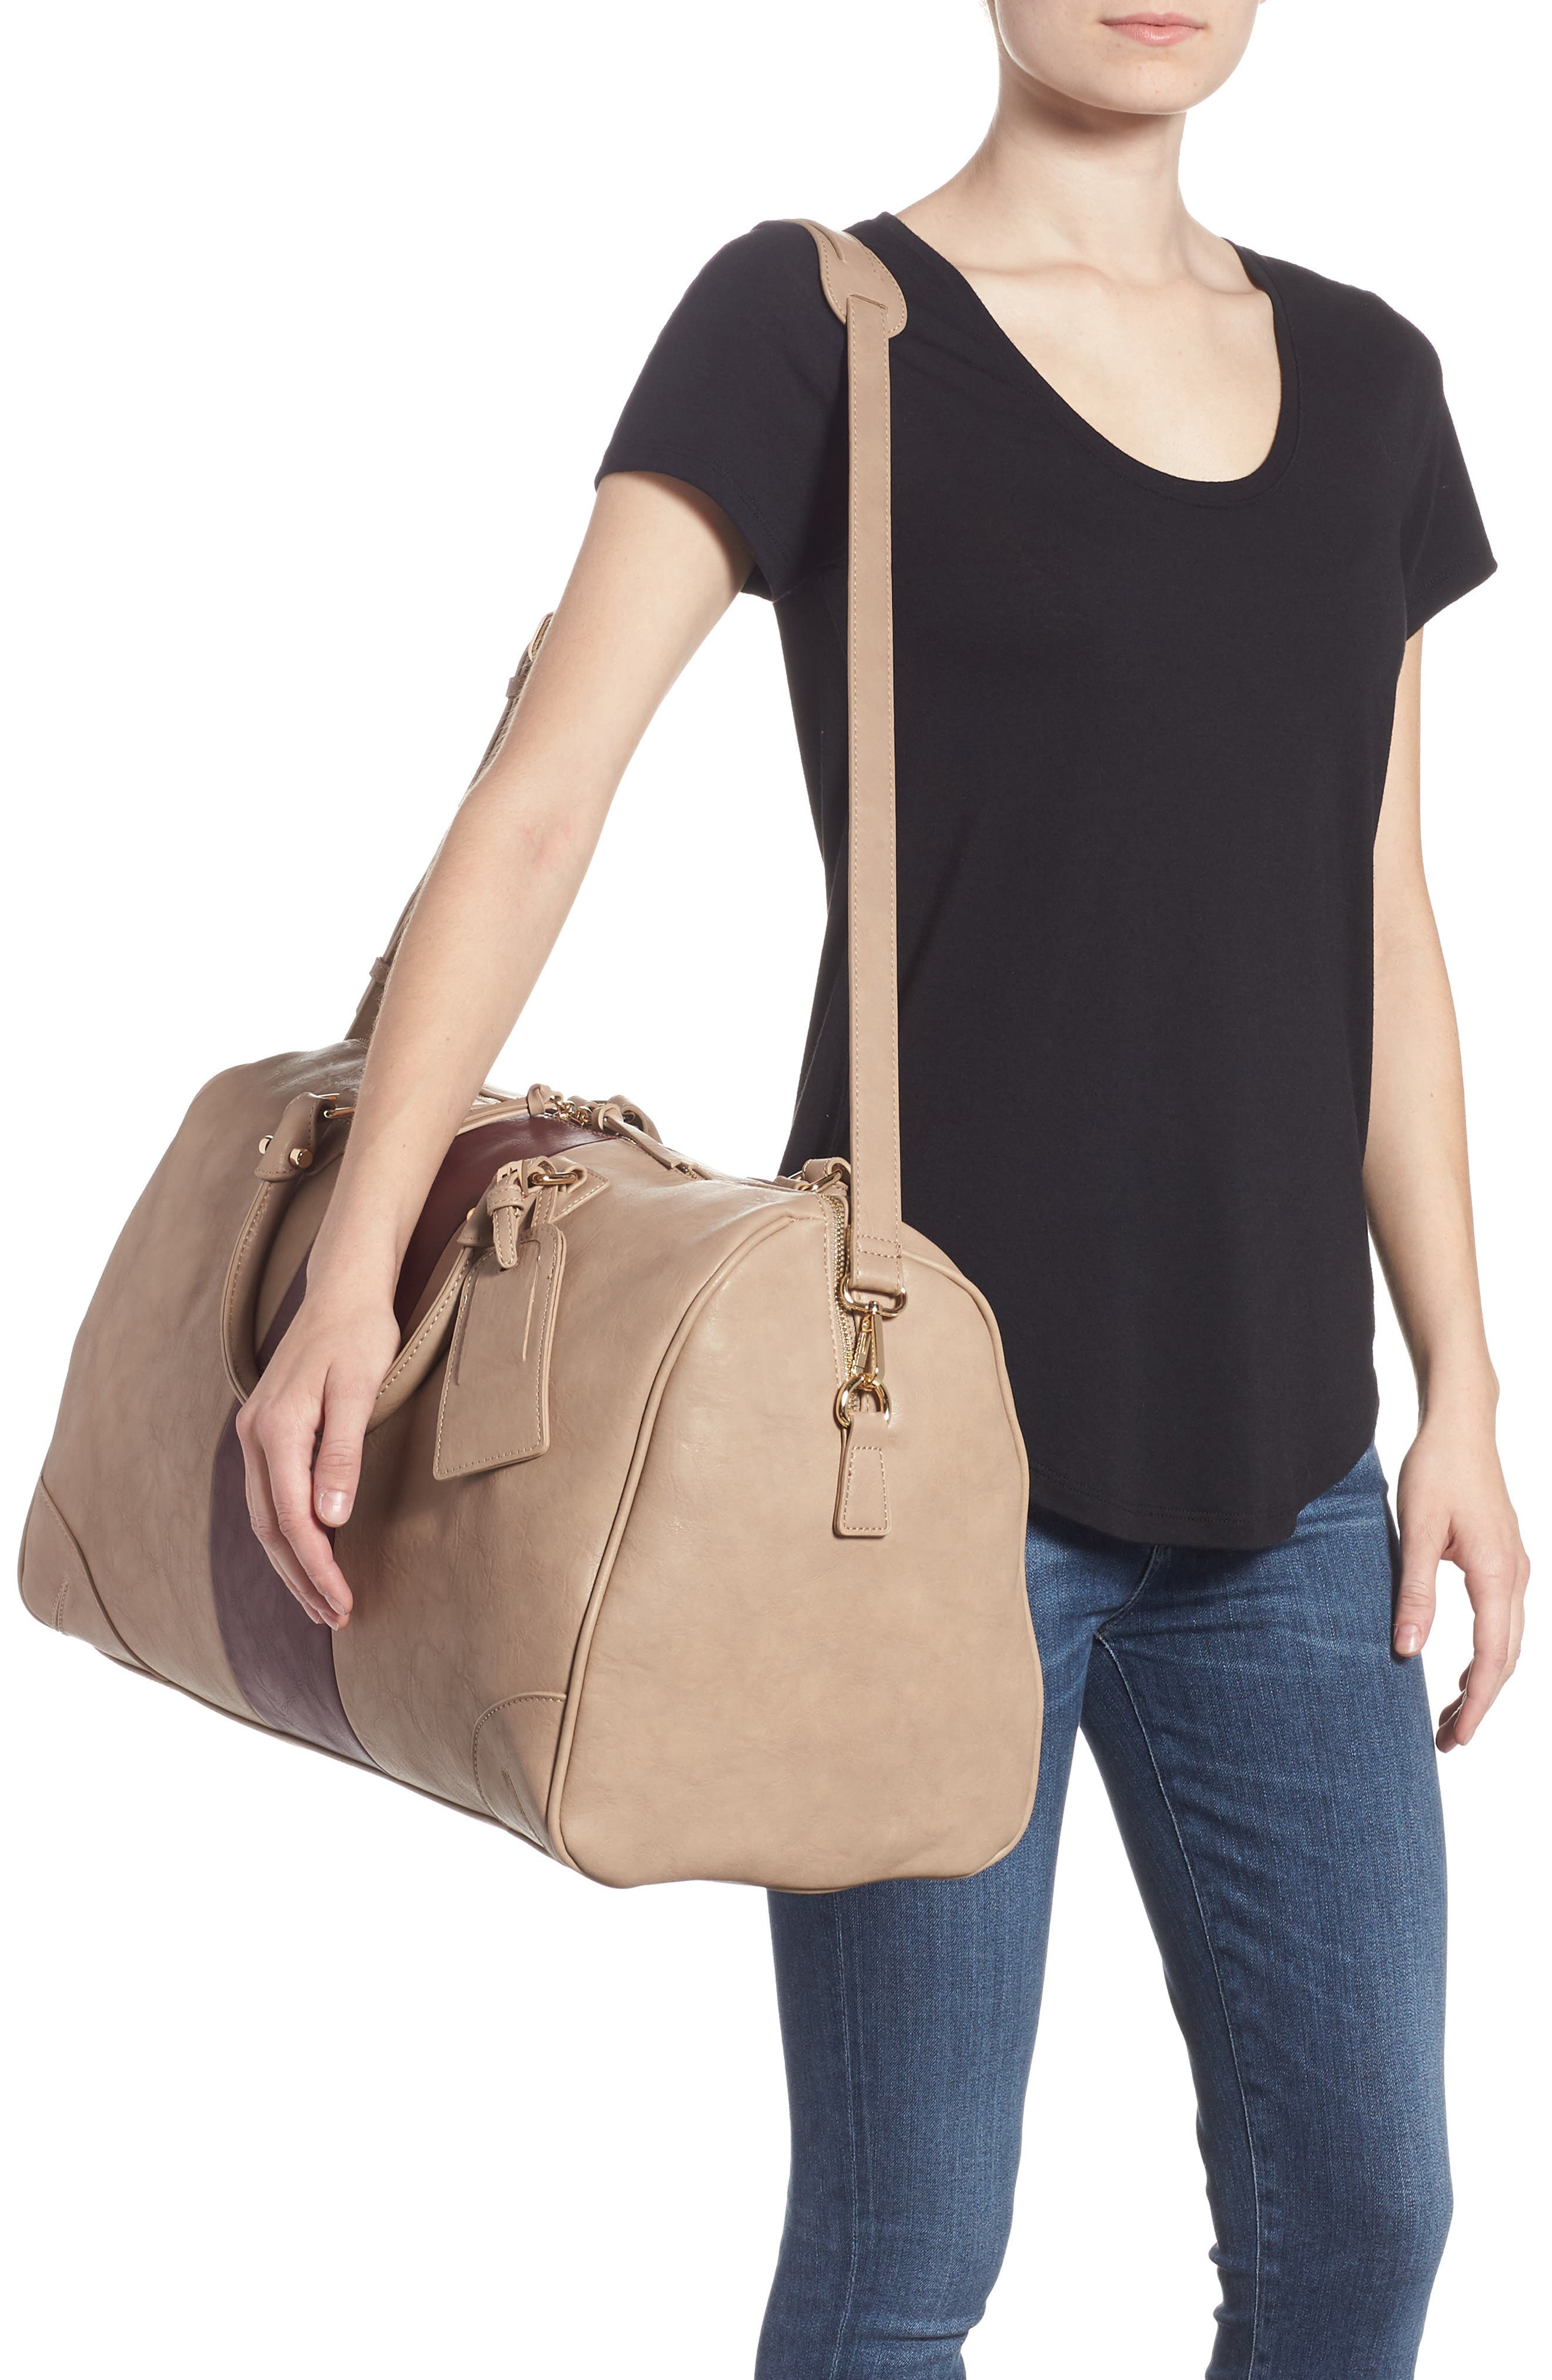 'Robin' Faux Leather Weekend Bag,                             Alternate thumbnail 2, color,                             TAUPE